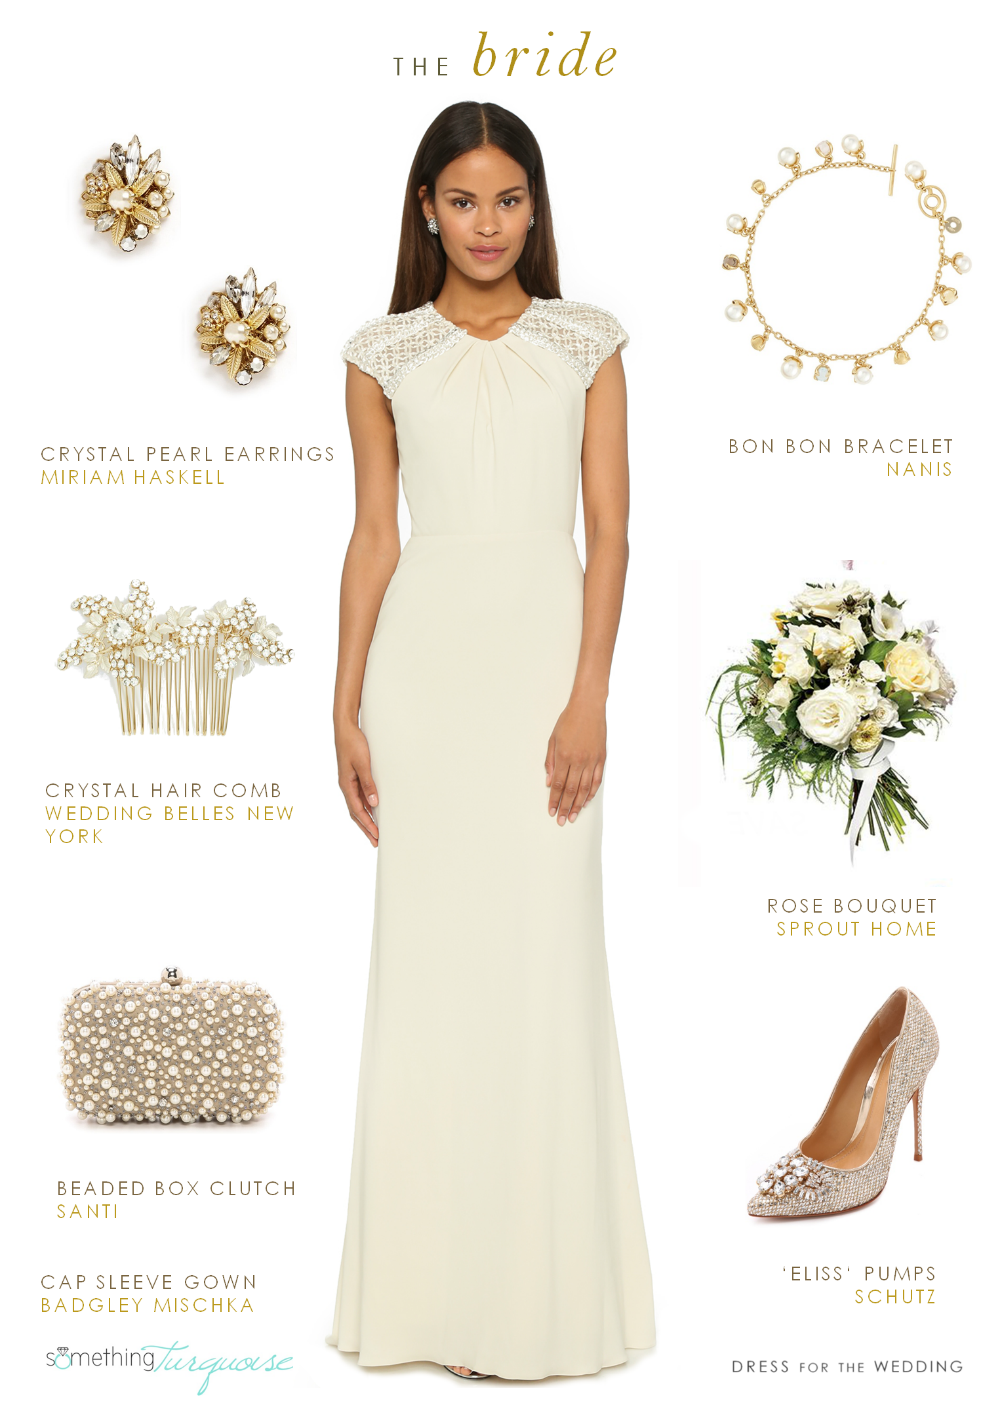 Fall look for a bride with pearls and cap sleeve gown by Dress for the Wedding for Something Turquoise